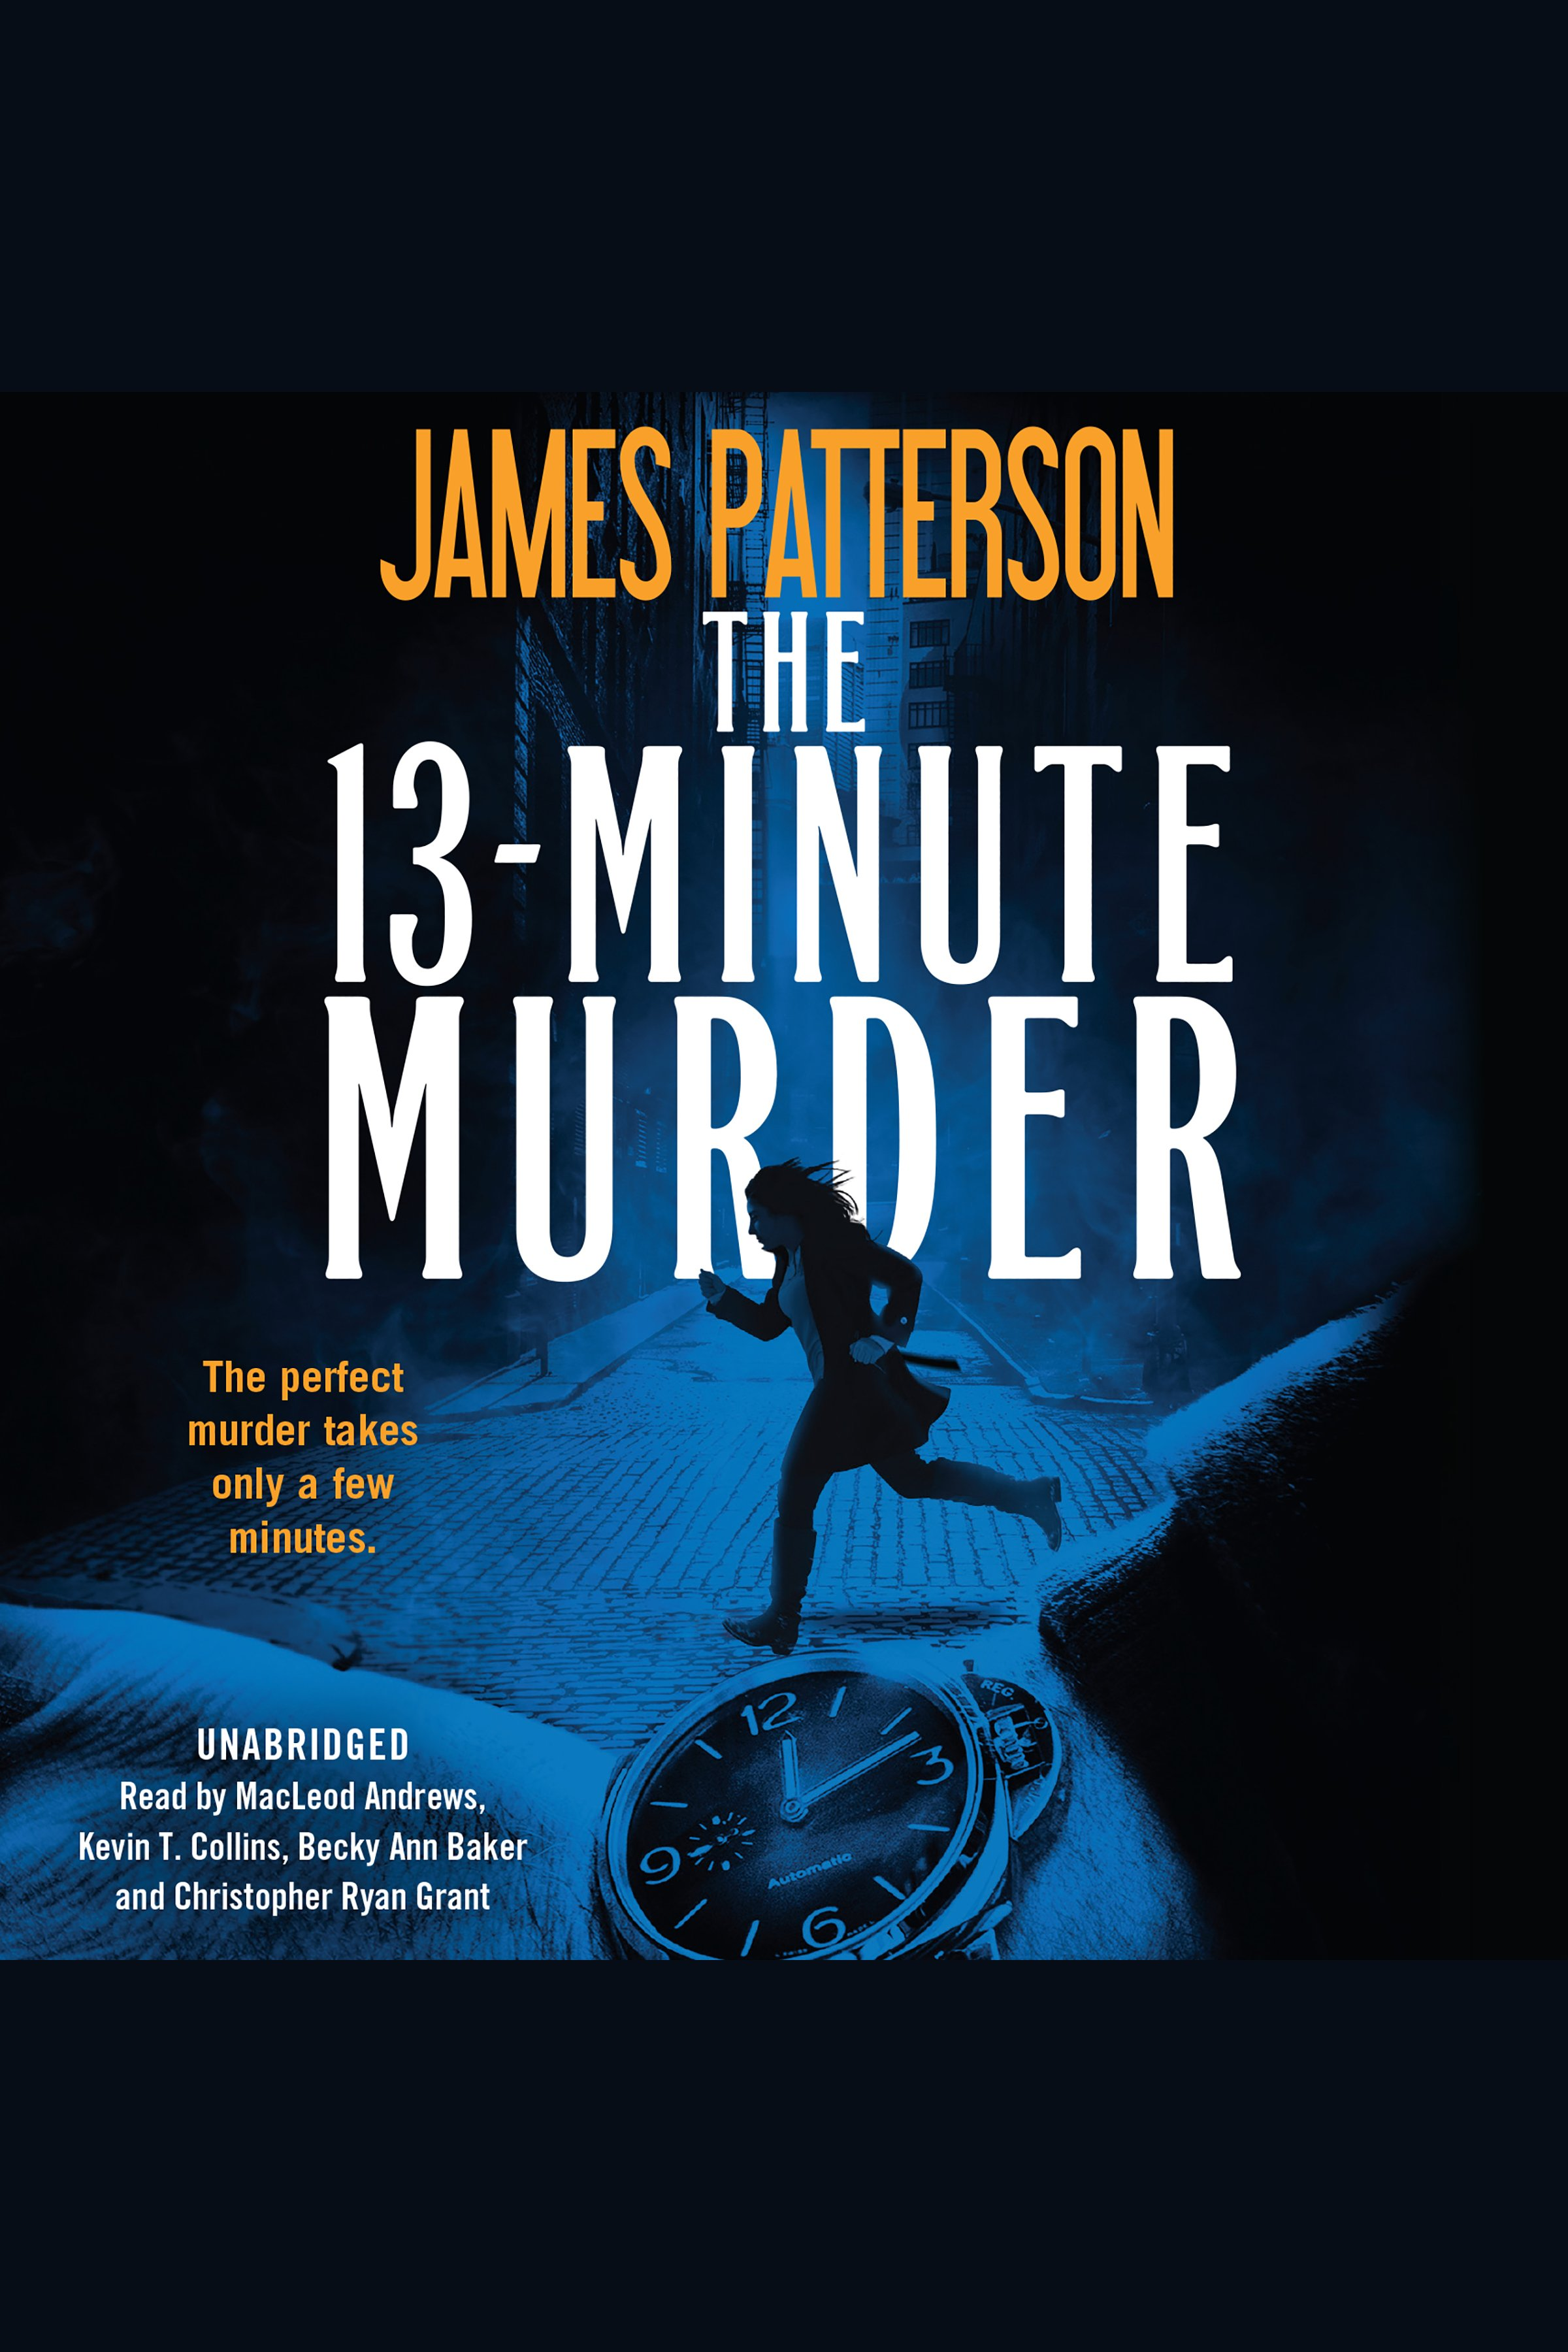 The 13-minute murder : a thriller